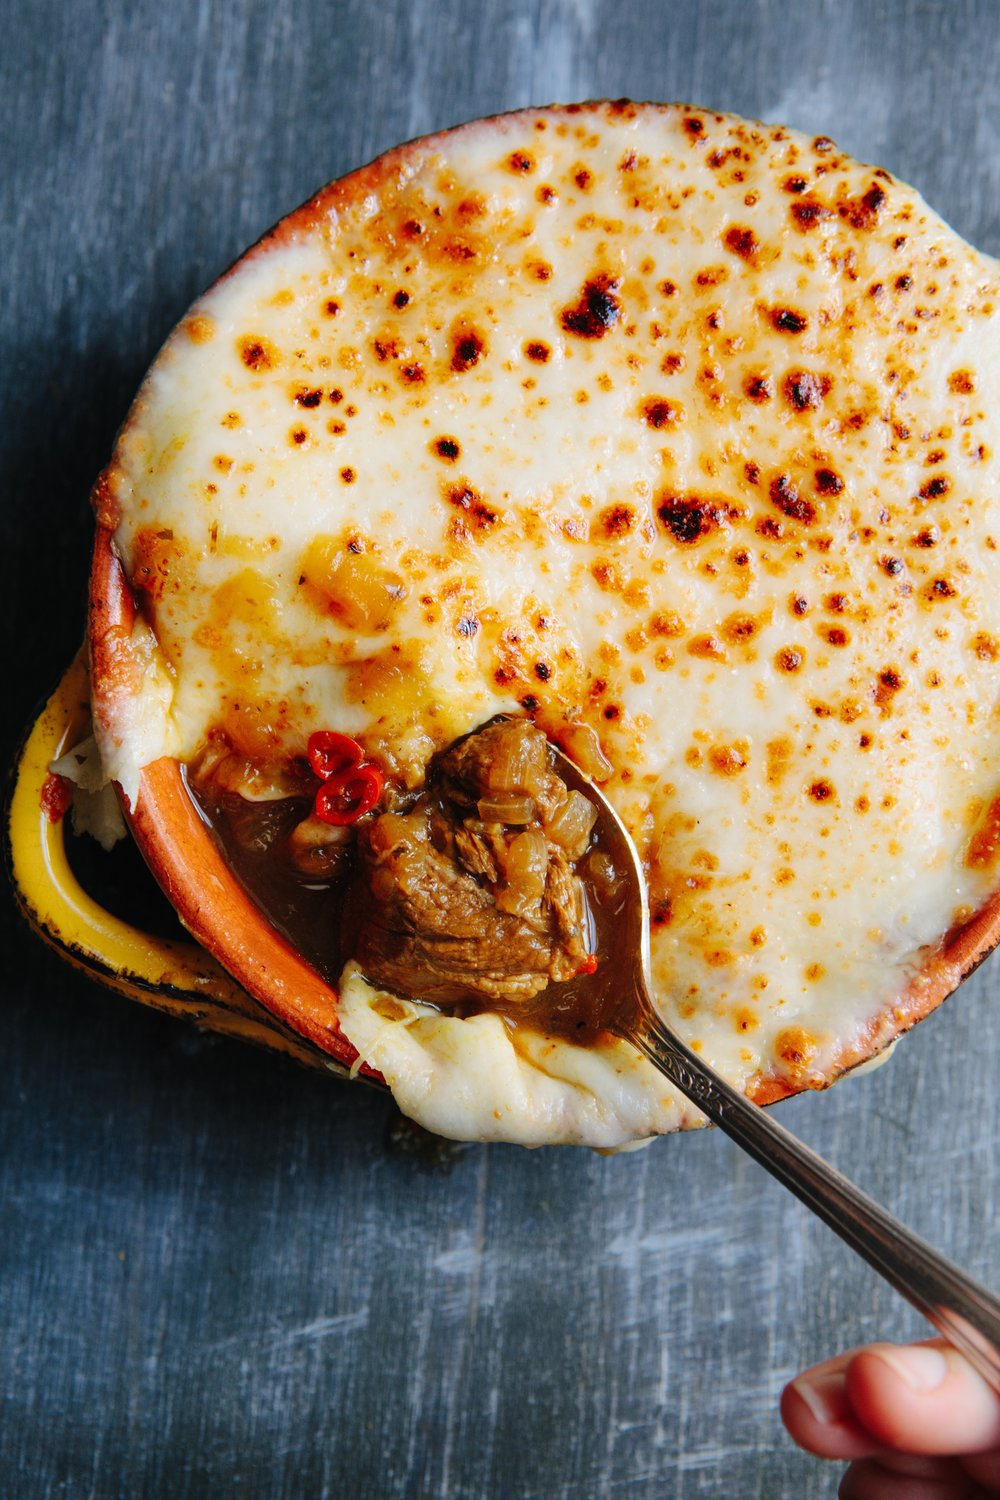 THE ART OF THE MASHUP_Lamb Vindaloo French Onion Soup_BRIAN SAMUELS PHOTOGRAPHY-9320.jpg